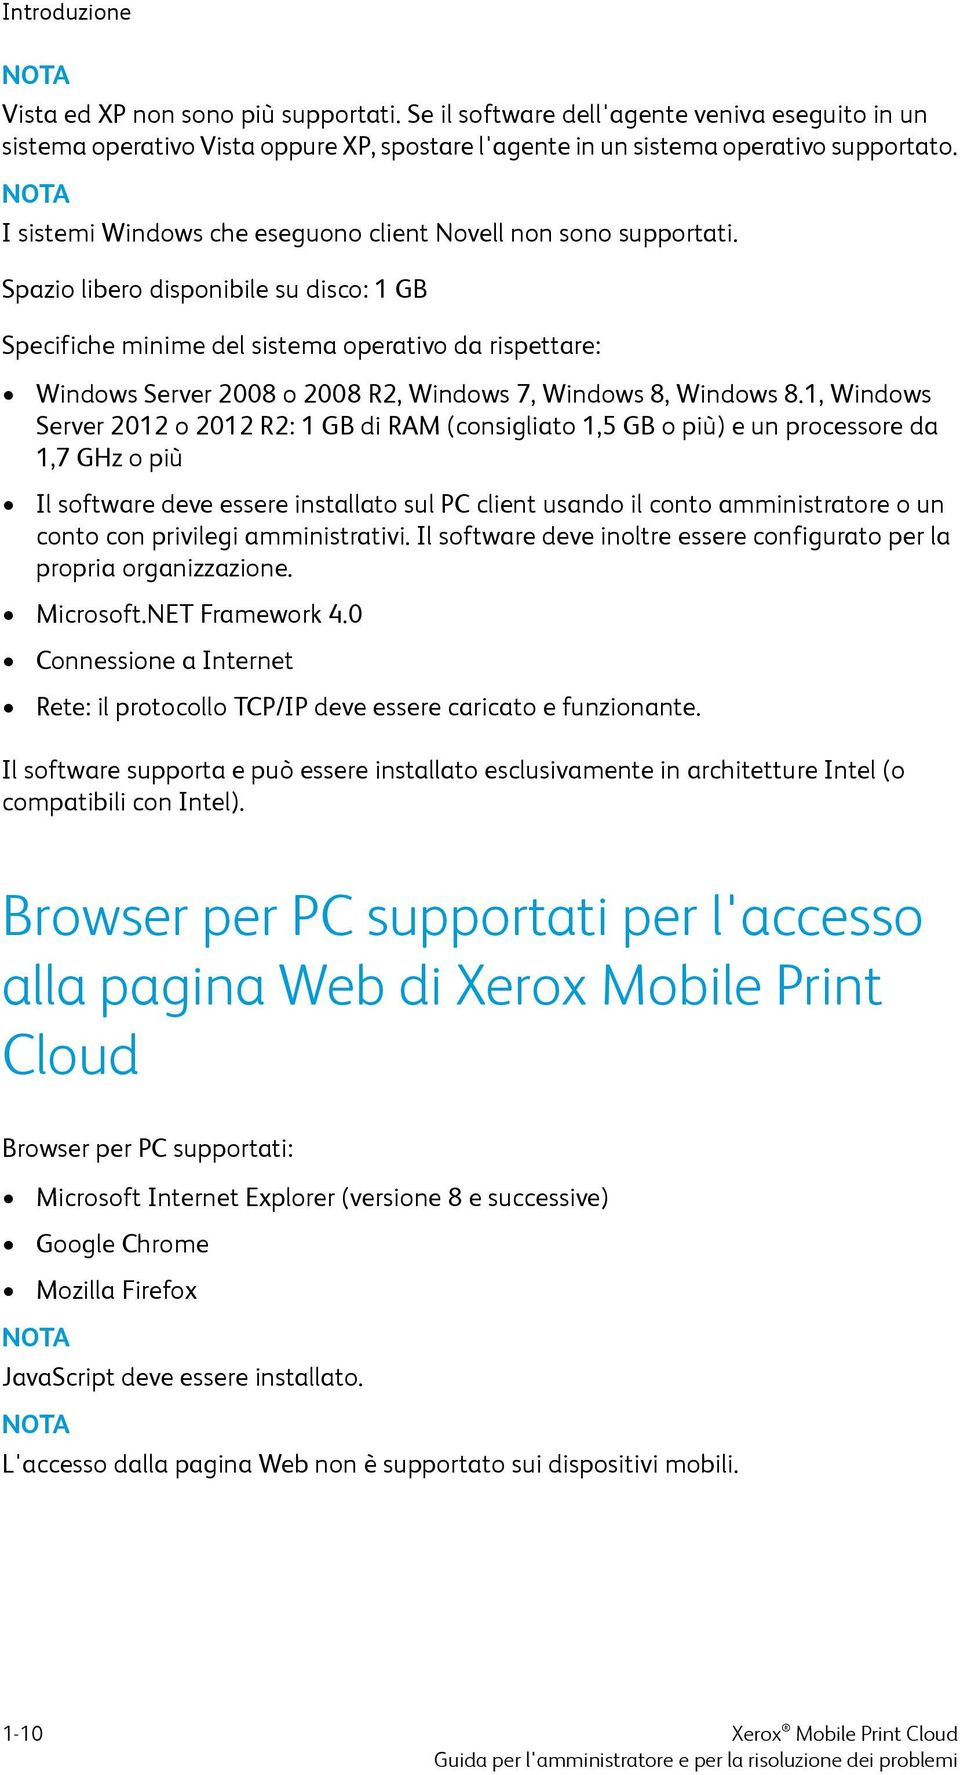 Spazio libero disponibile su disco: 1 GB Specifiche minime del sistema operativo da rispettare: Windows Server 2008 o 2008 R2, Windows 7, Windows 8, Windows 8.